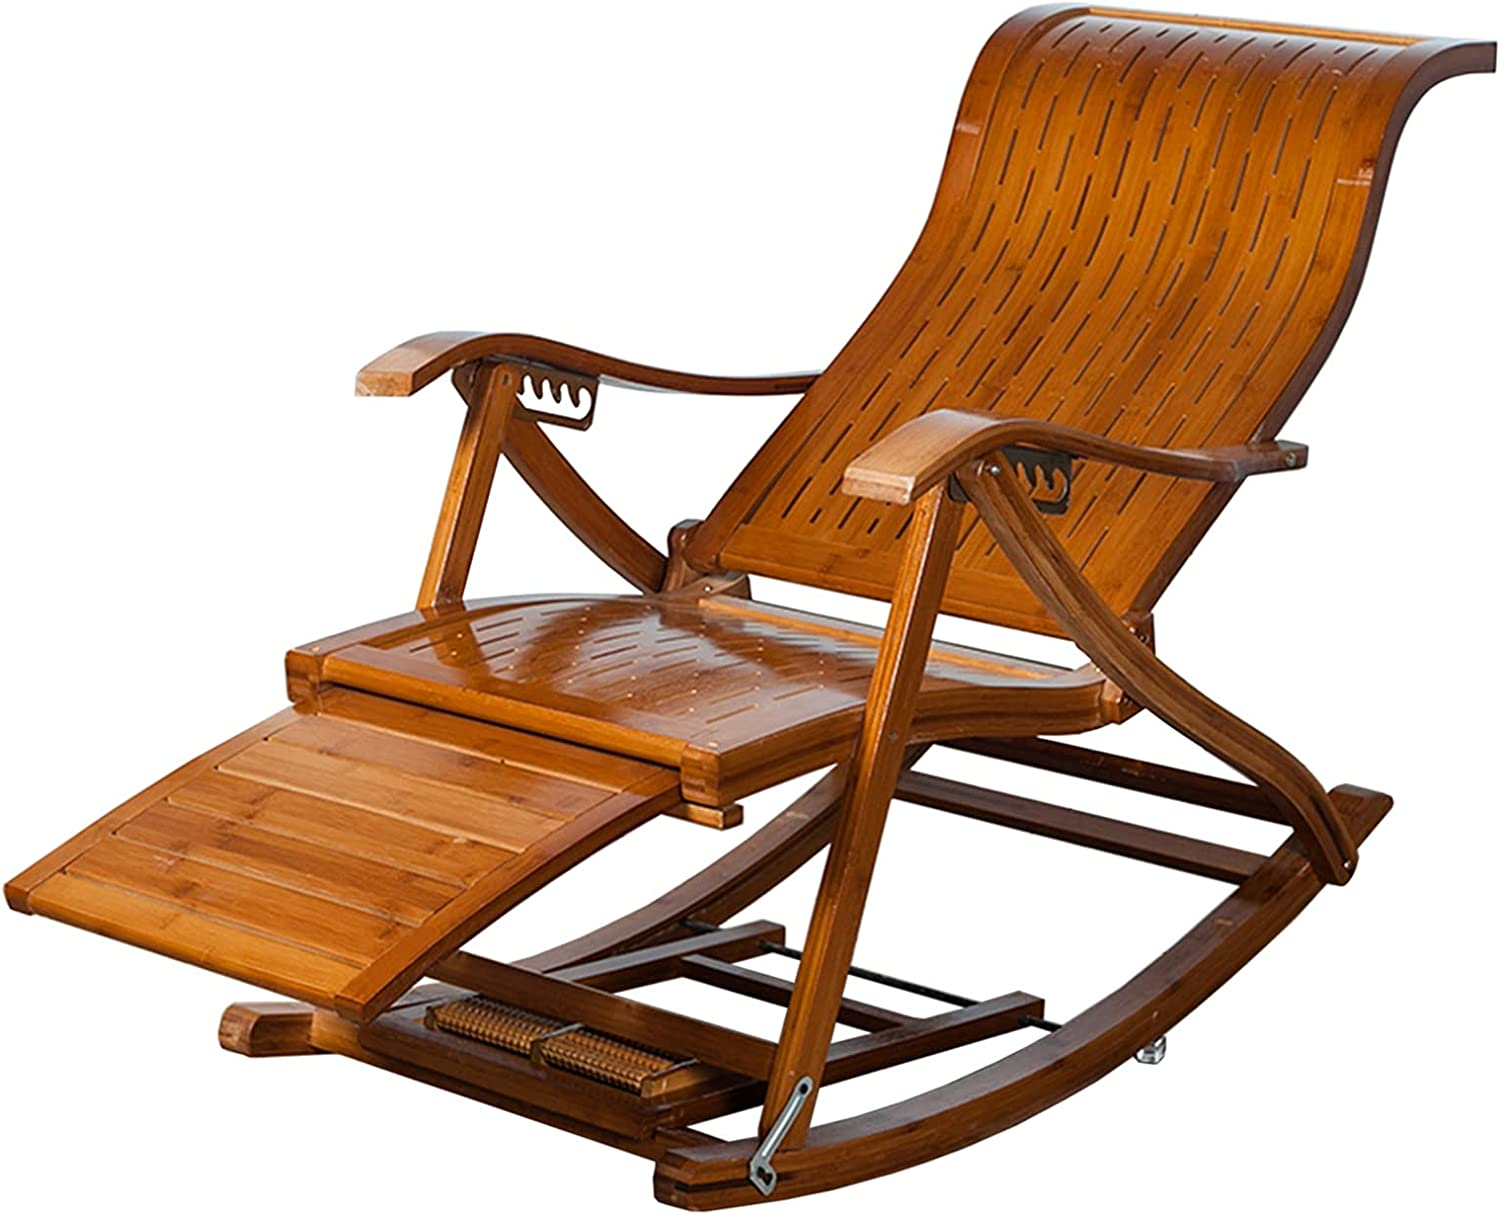 Garden Rocking Chairs for Adults Relax Bamboo Ch Outstanding 1 year warranty Lounge